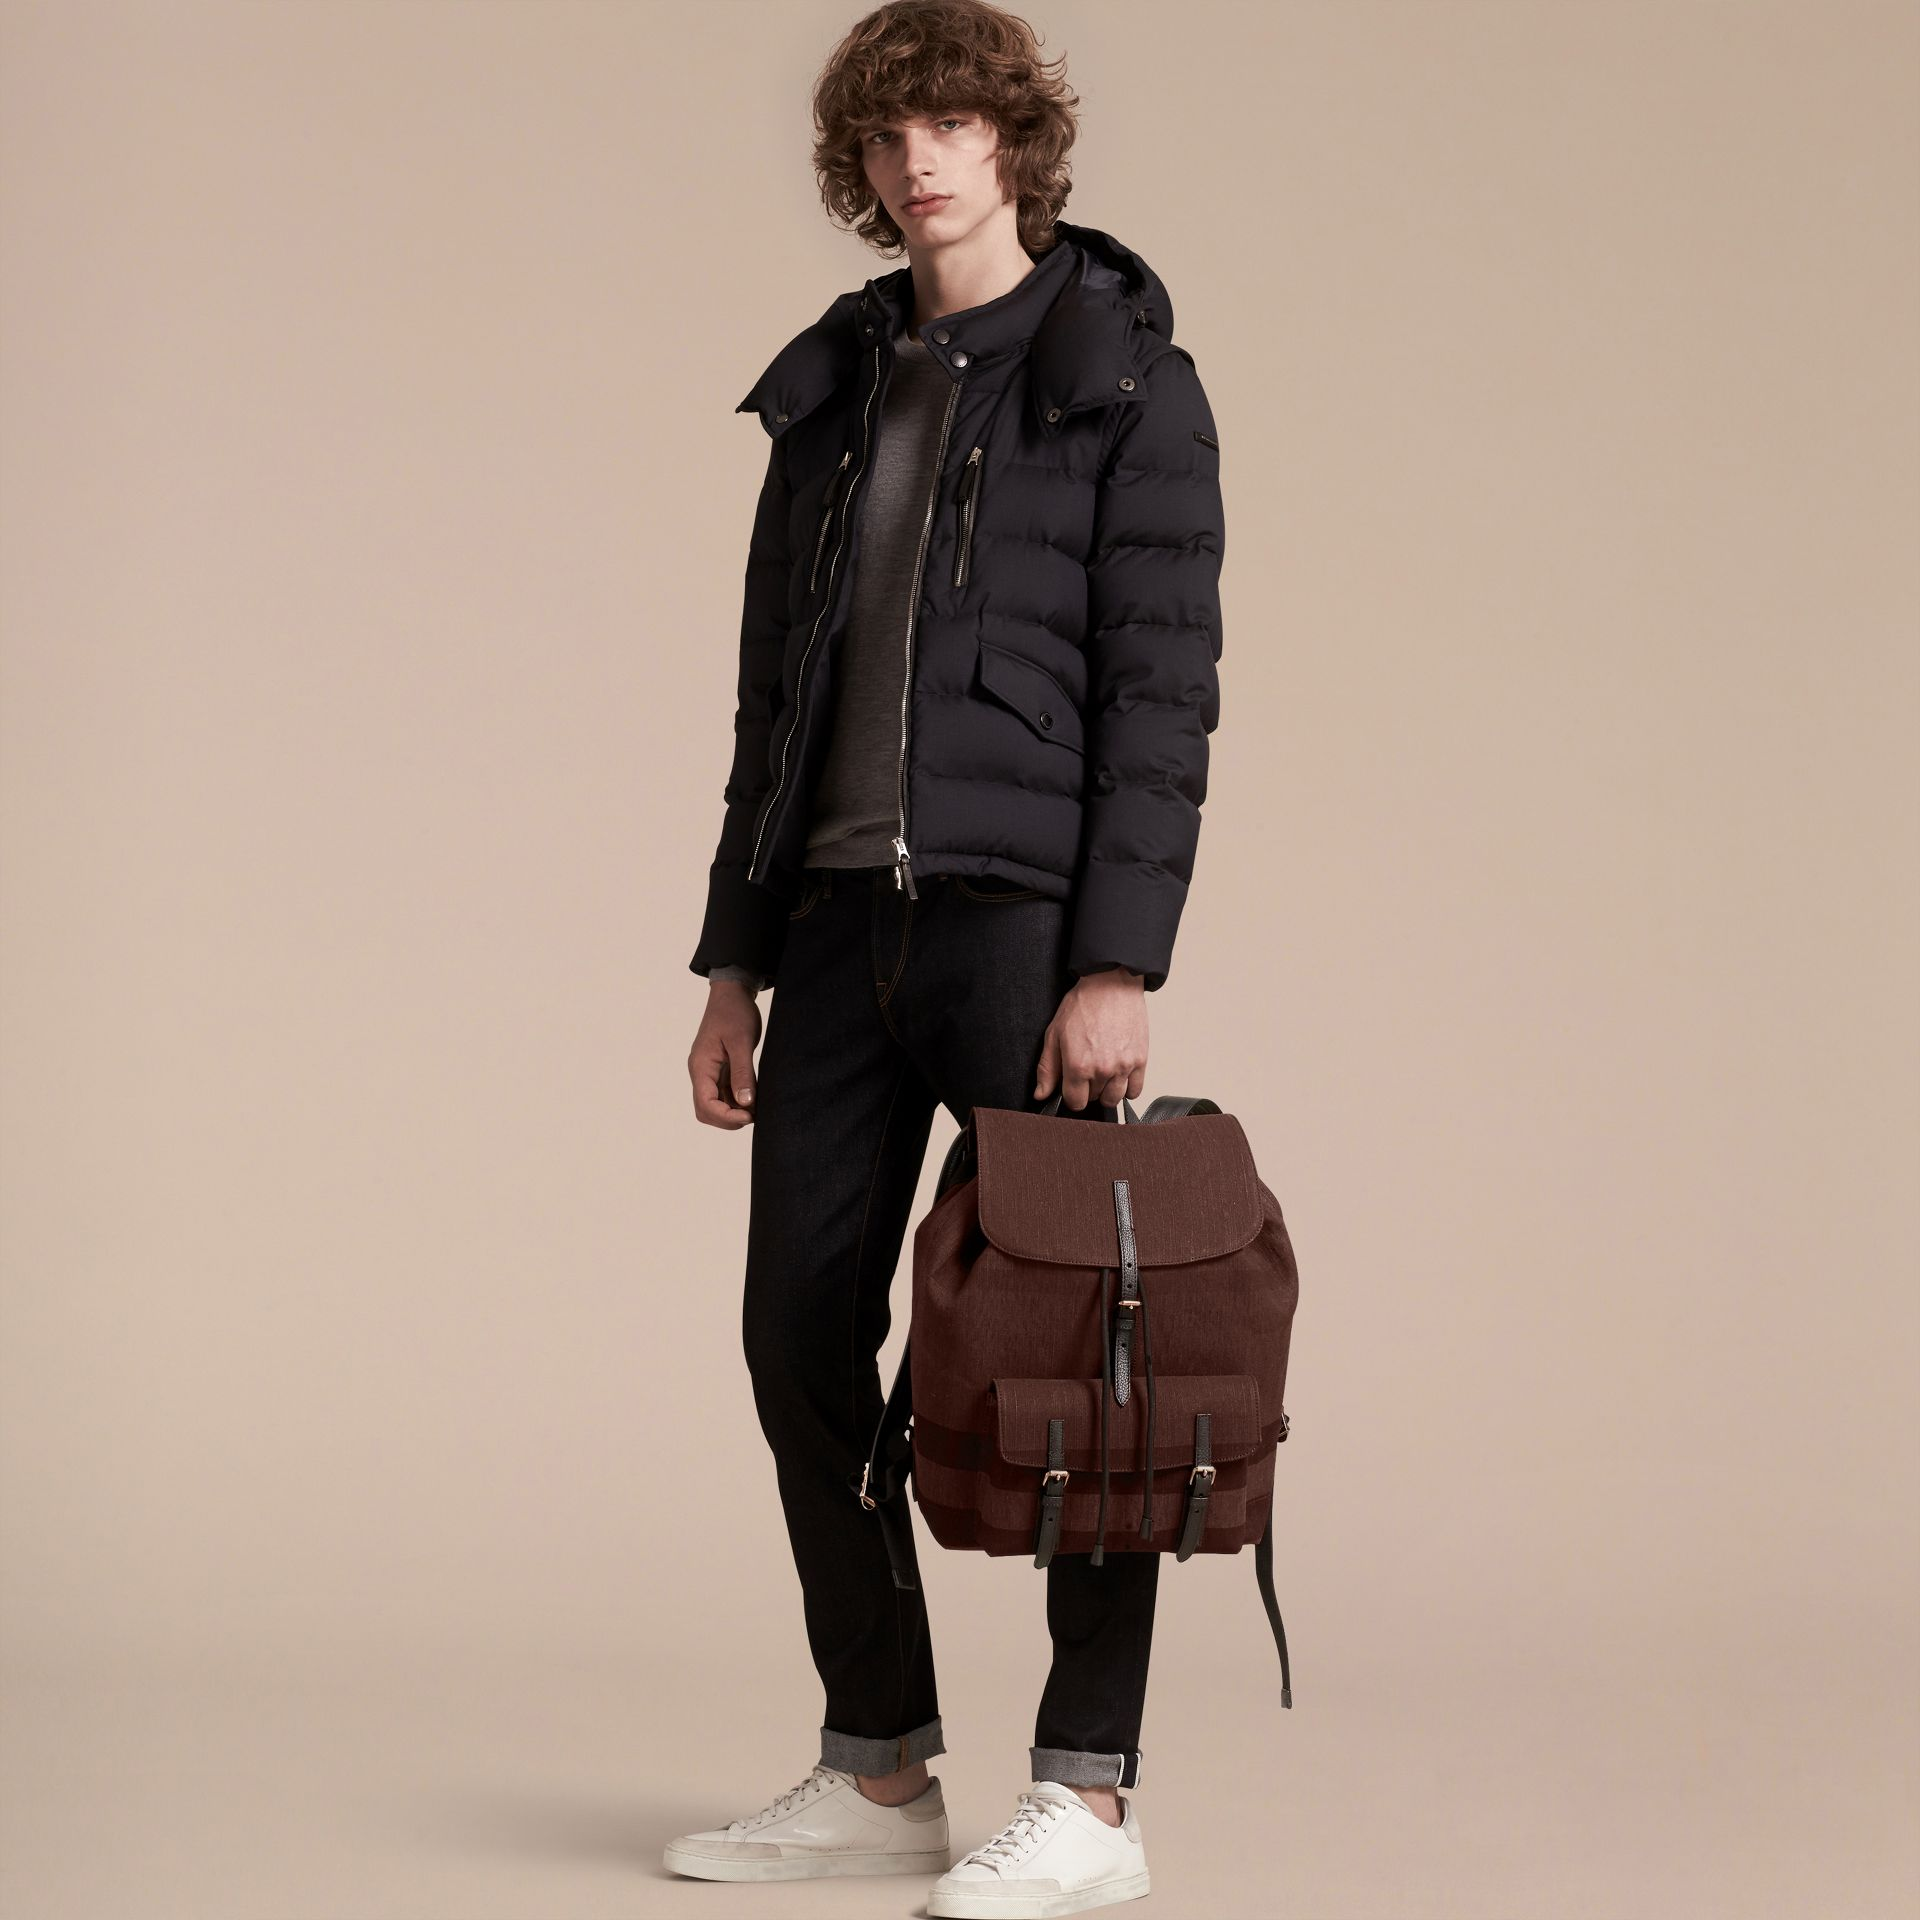 Claret Overdyed Canvas Check Backpack Claret - gallery image 3